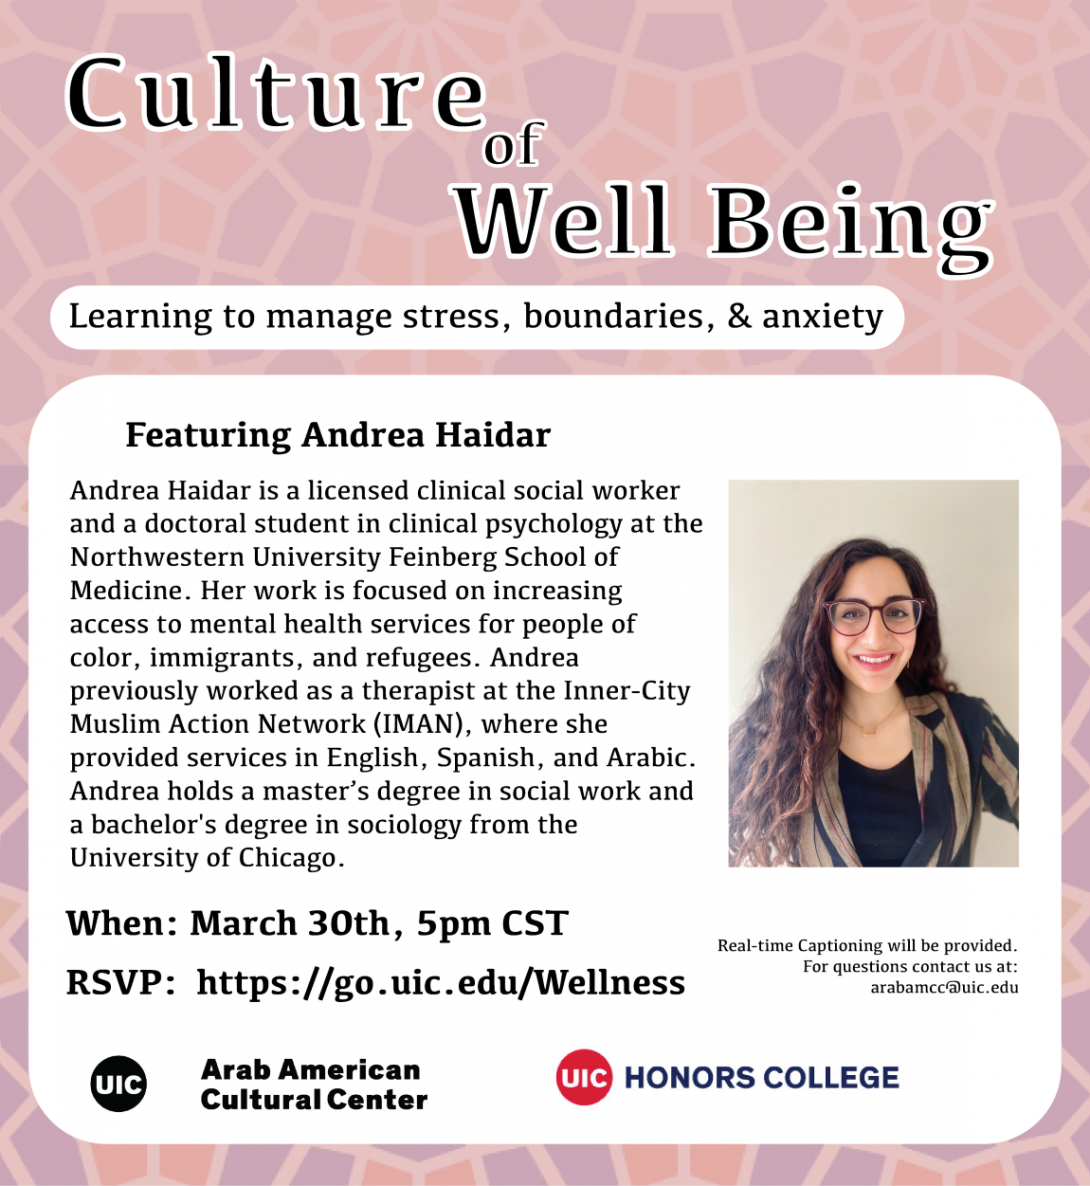 Background is light pink overlaying islamic geometric art. Title of the event is on top in black ink. A white box fills up most of the flyer and includes on the right a photo of the facilitator, young arab woman, wearing dark glasses with long brown hair, a black shirt with a brown and black jacket. logos of the center and honors college are at the bottom